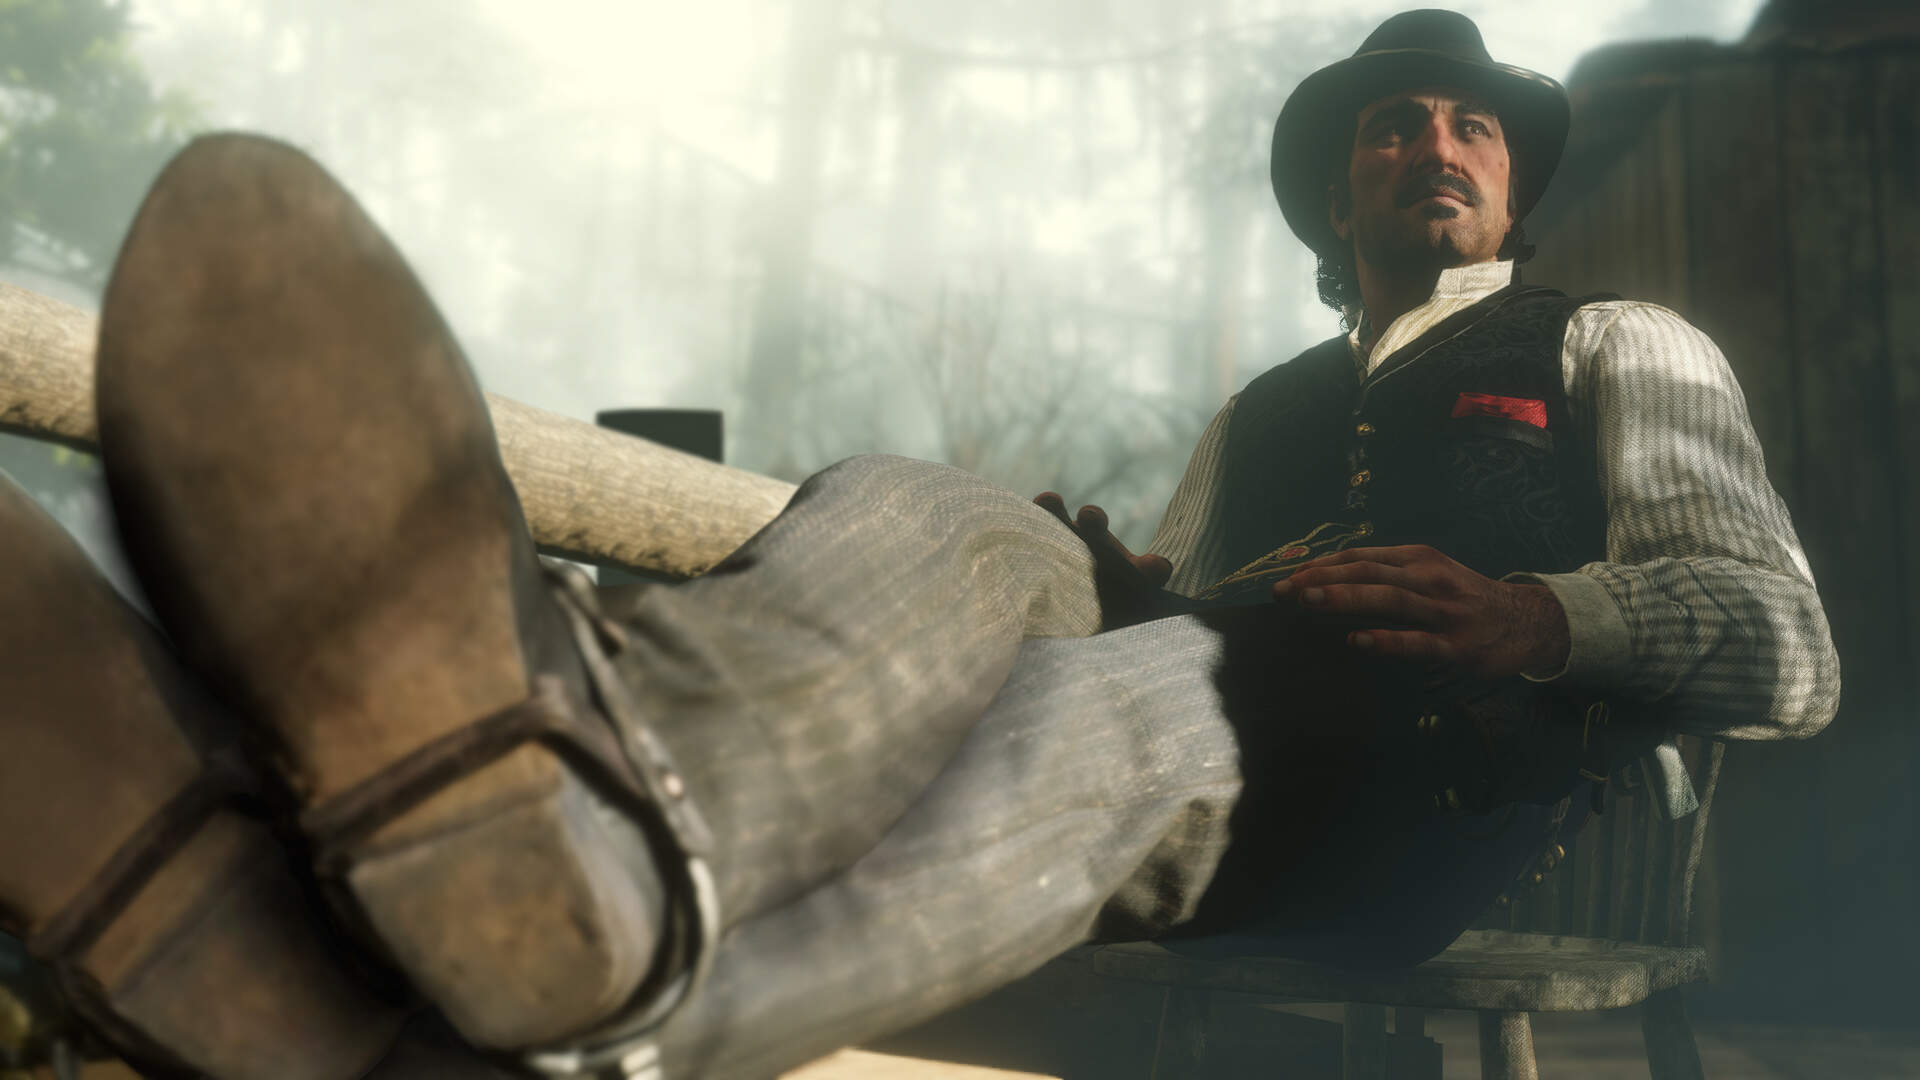 Red Dead Redemption 2's PC Launch is Marred by Crashes [Update]